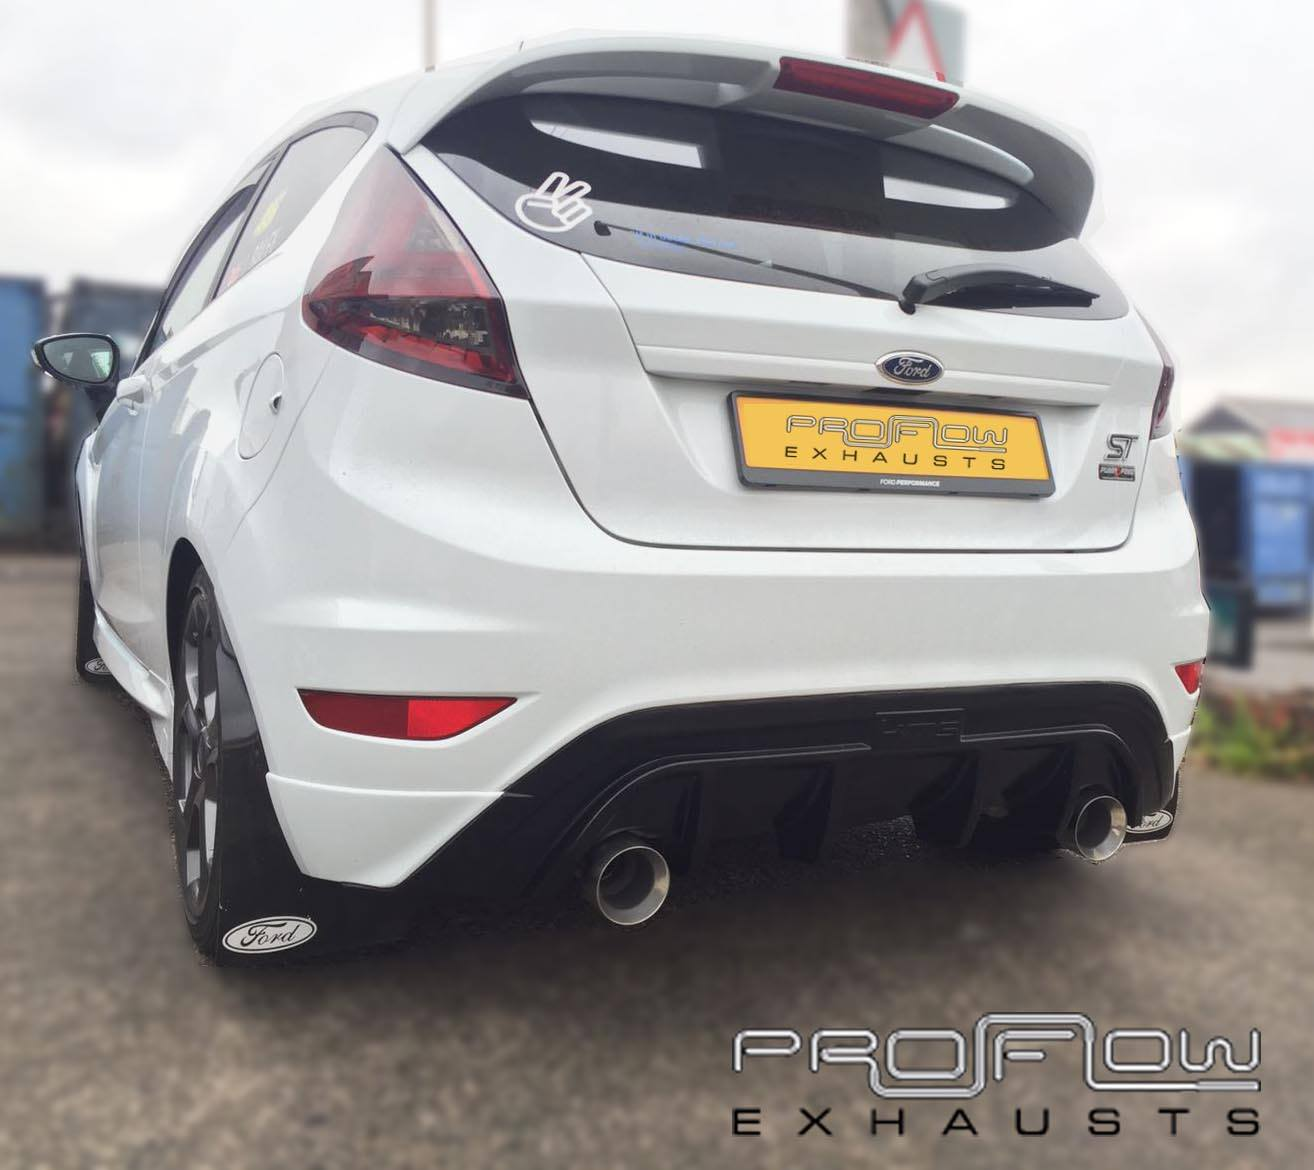 Ford Fiesta St Fitted With Proflow Duel Rear Stainless Steel Exhaust Proflow Exhausts